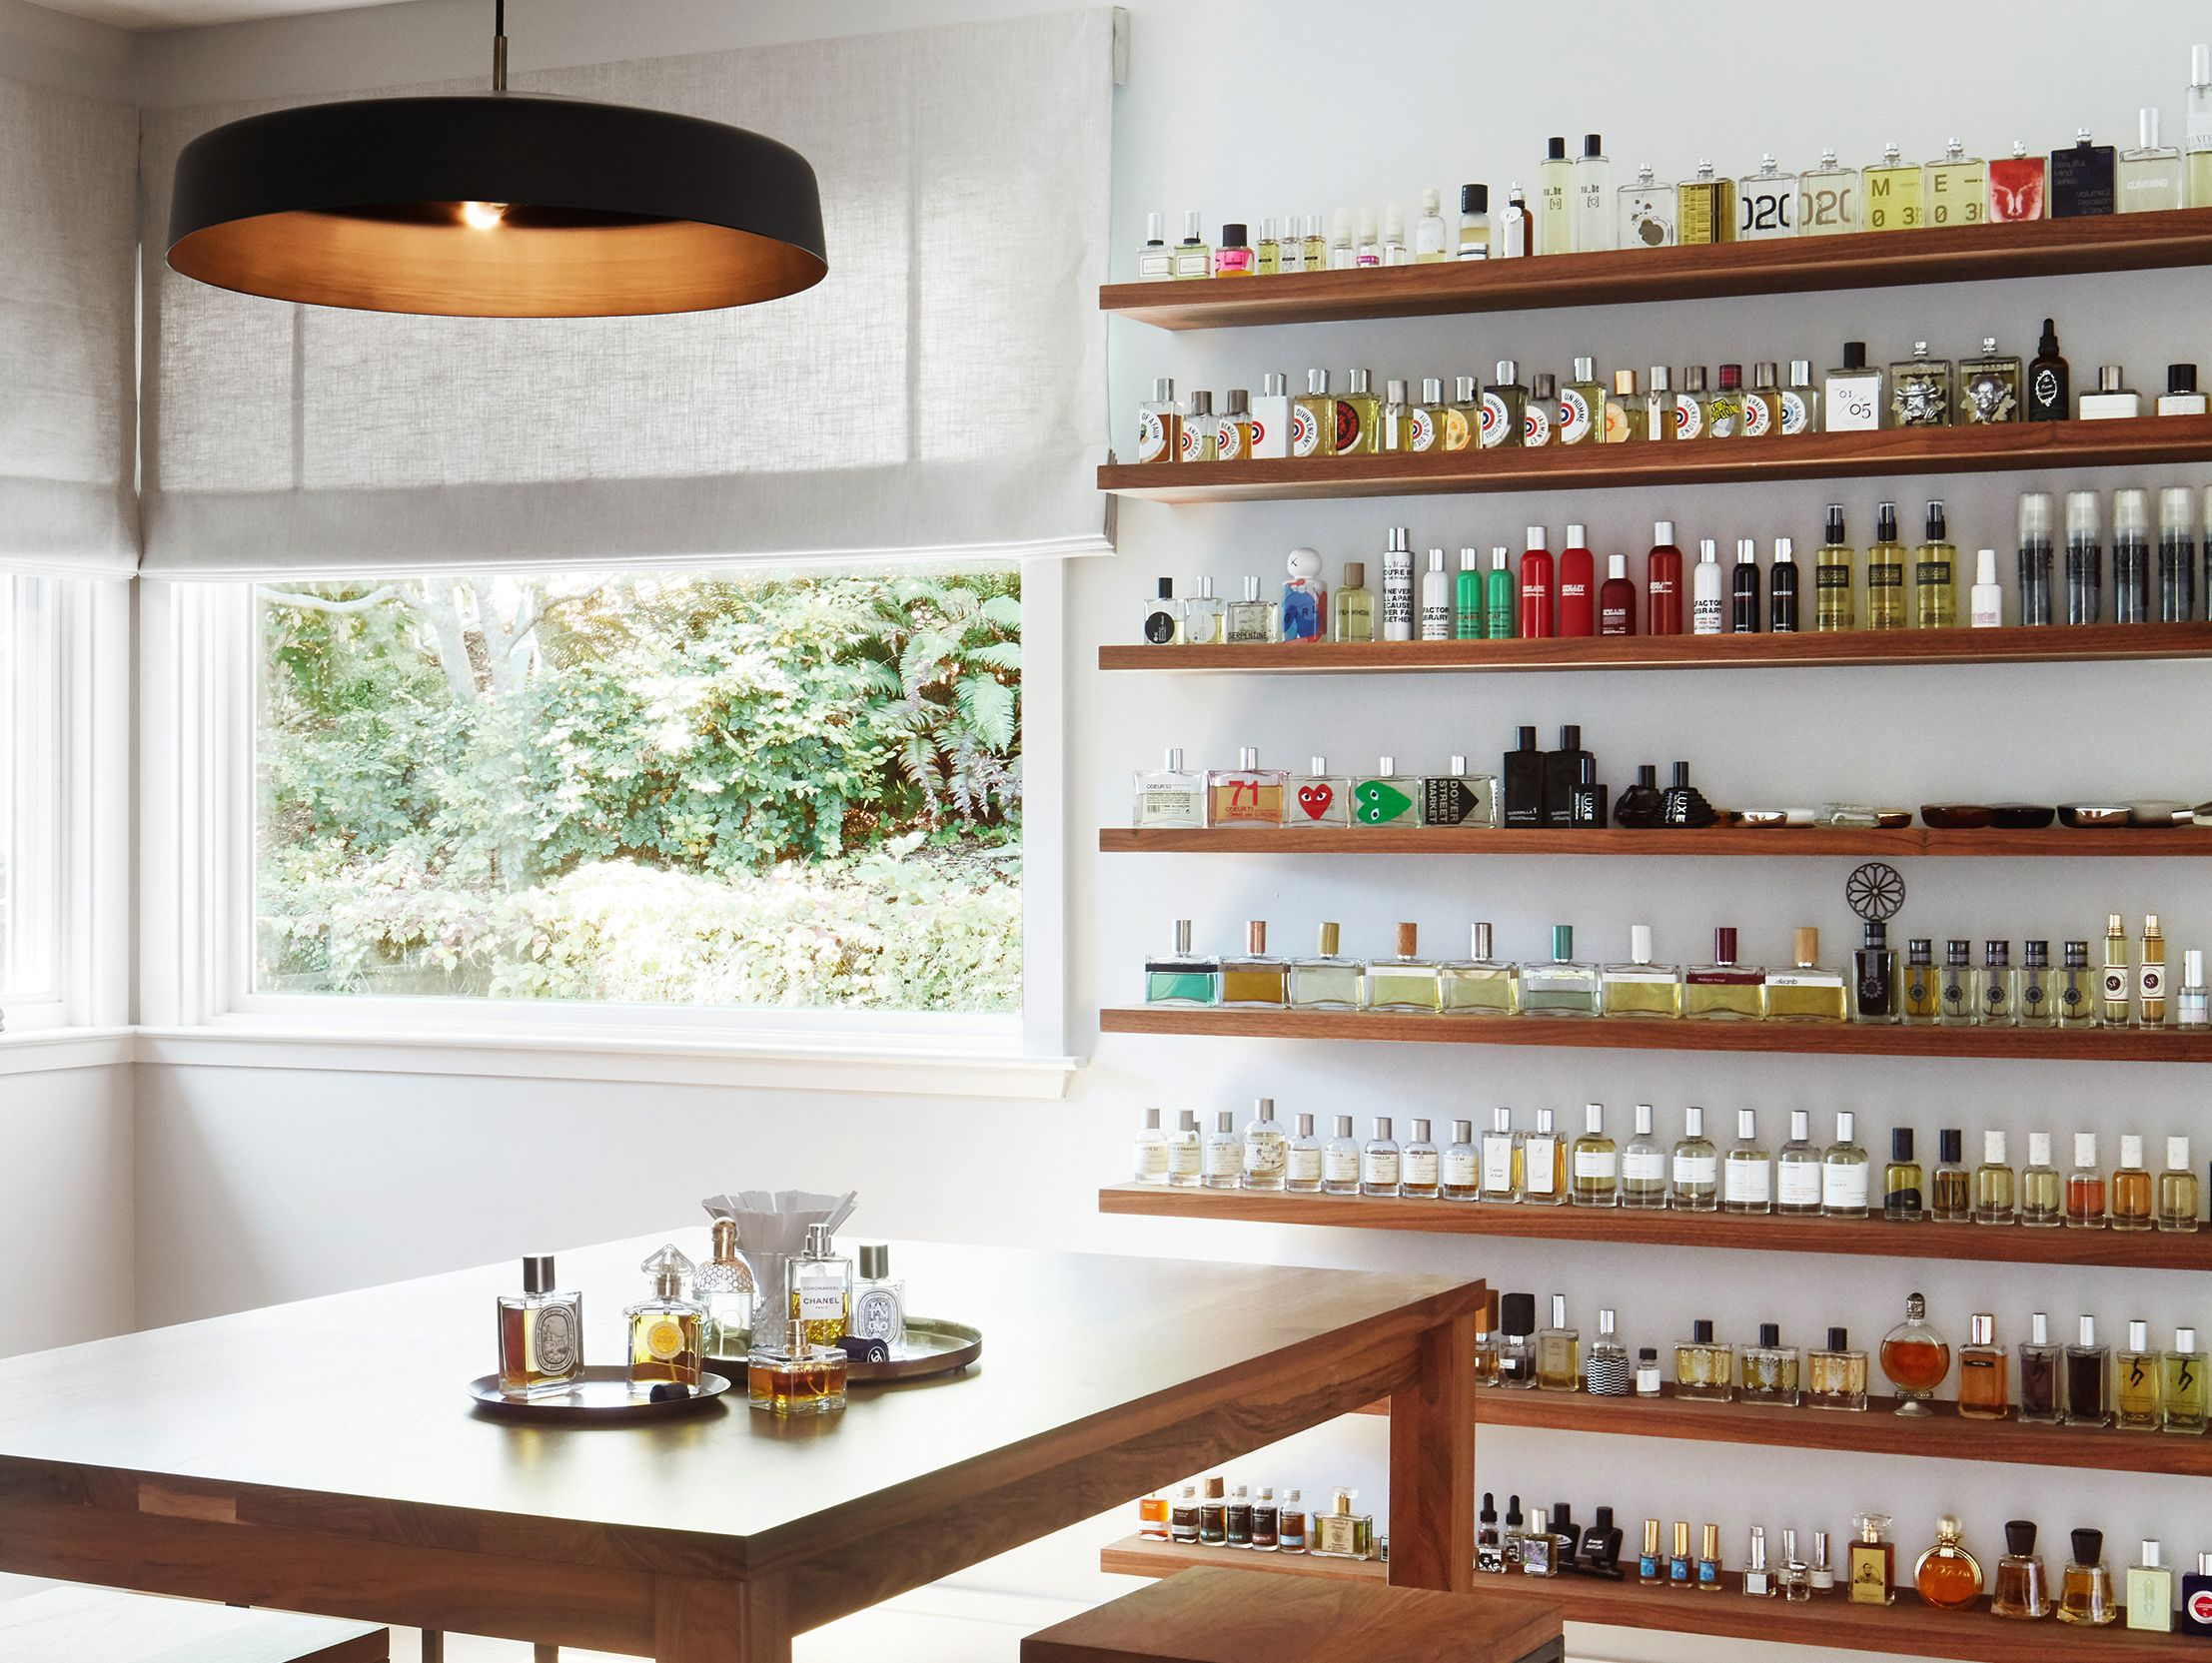 Tour a mid century modern home in california with its own perfumery